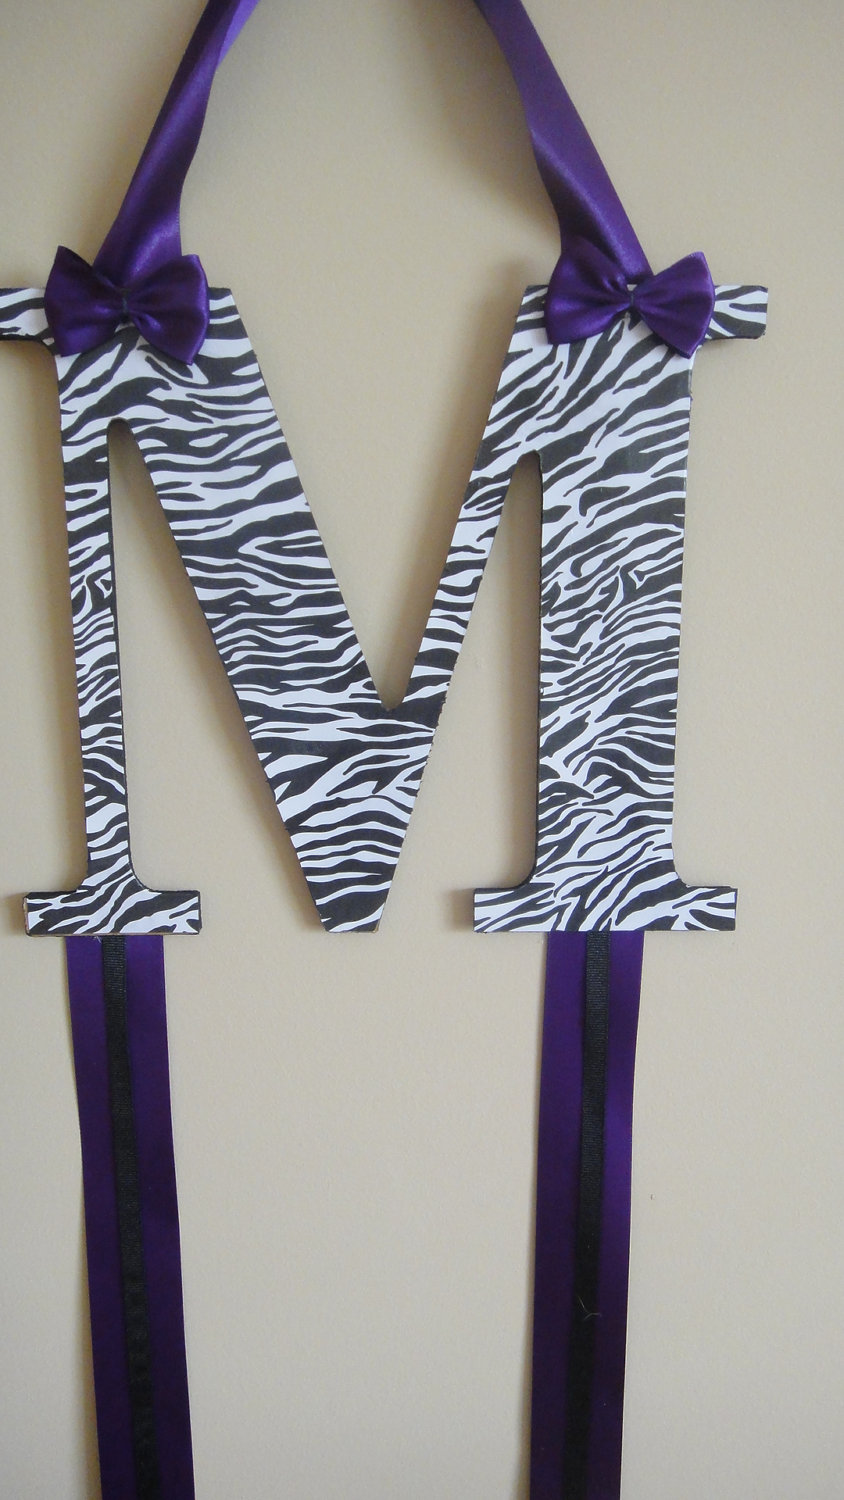 Personalized Bow Organizer Zebra and Purple